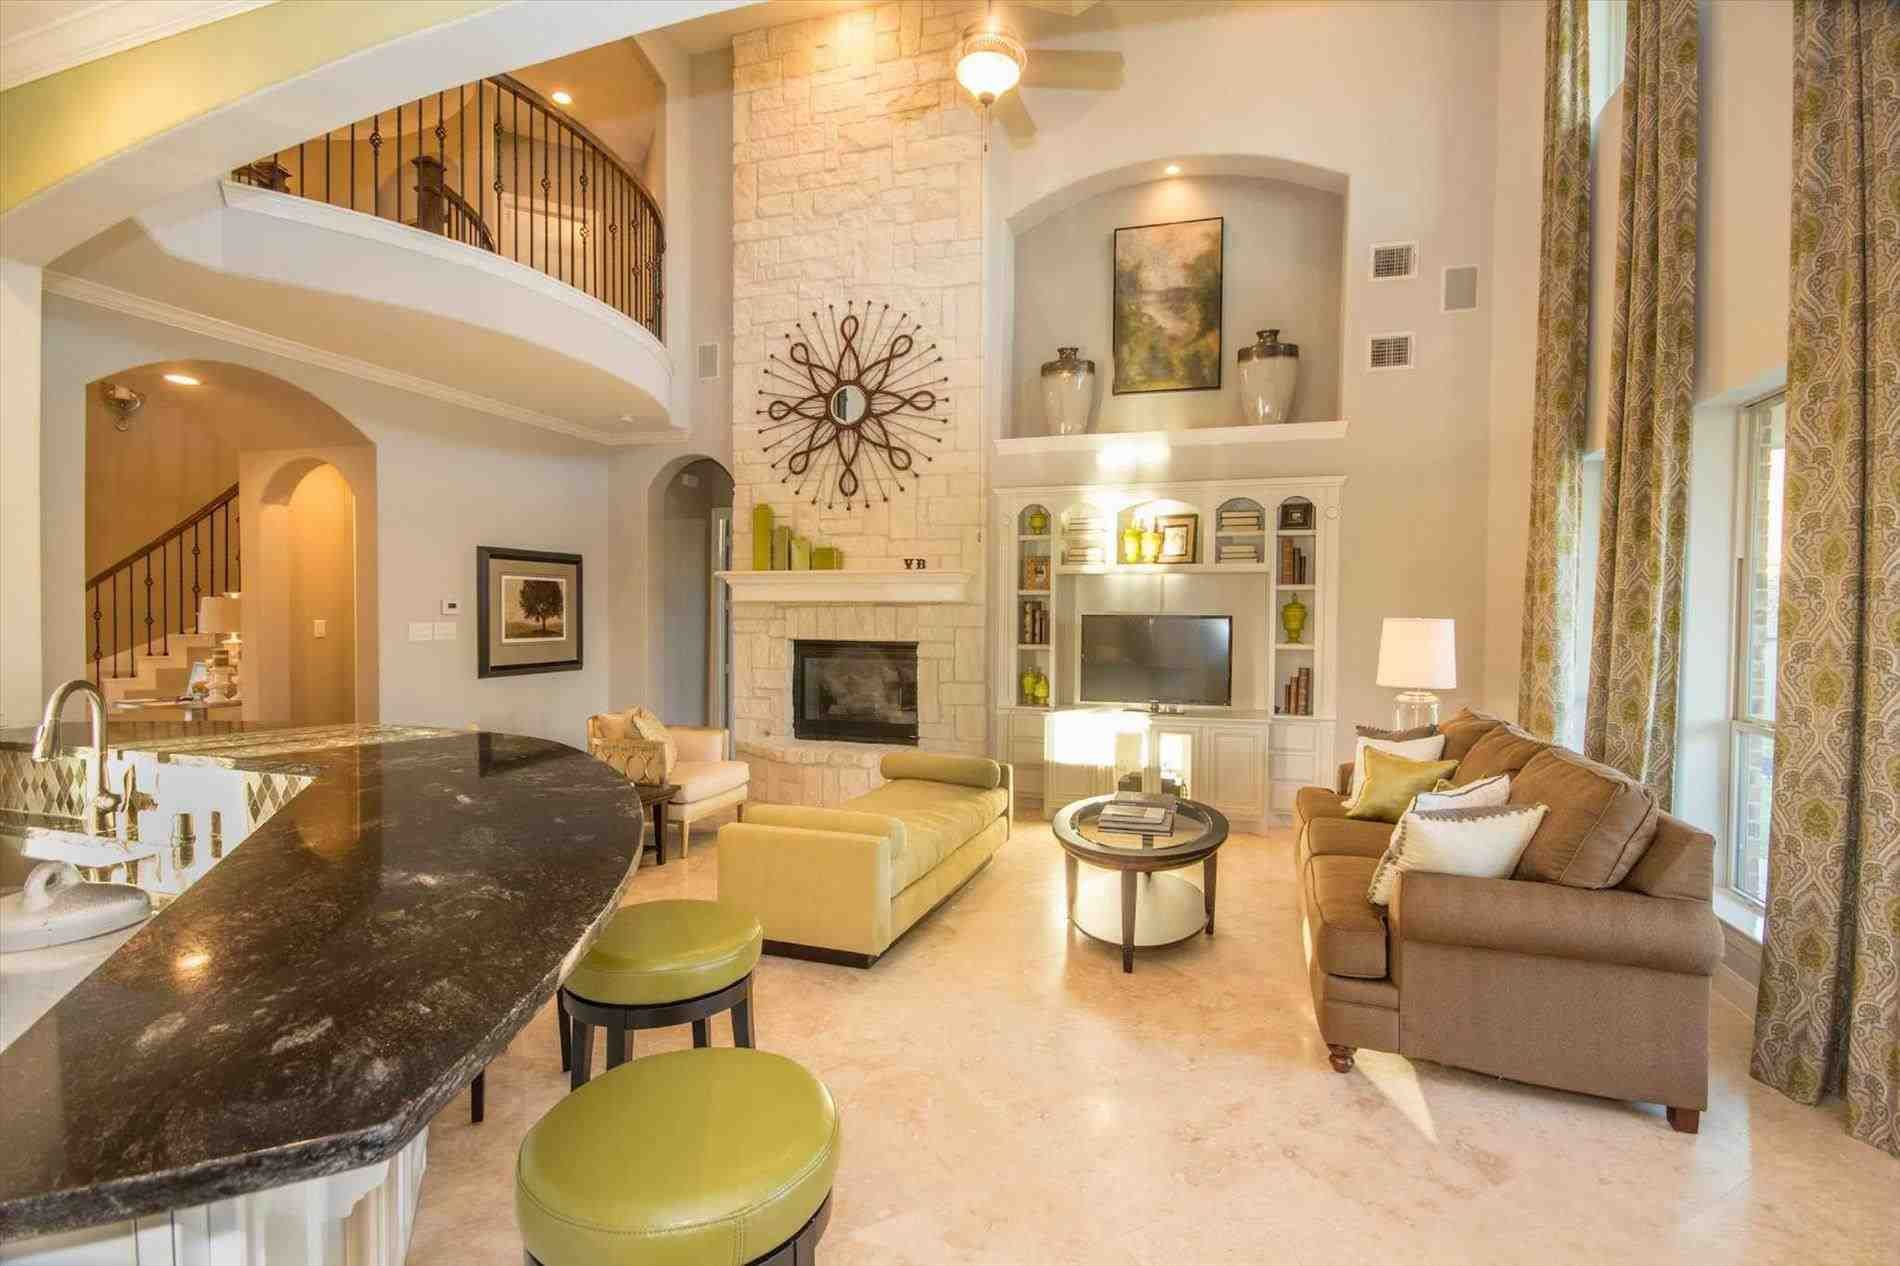 Buy Furniture Used In Model Homes New Homes Model Homes New